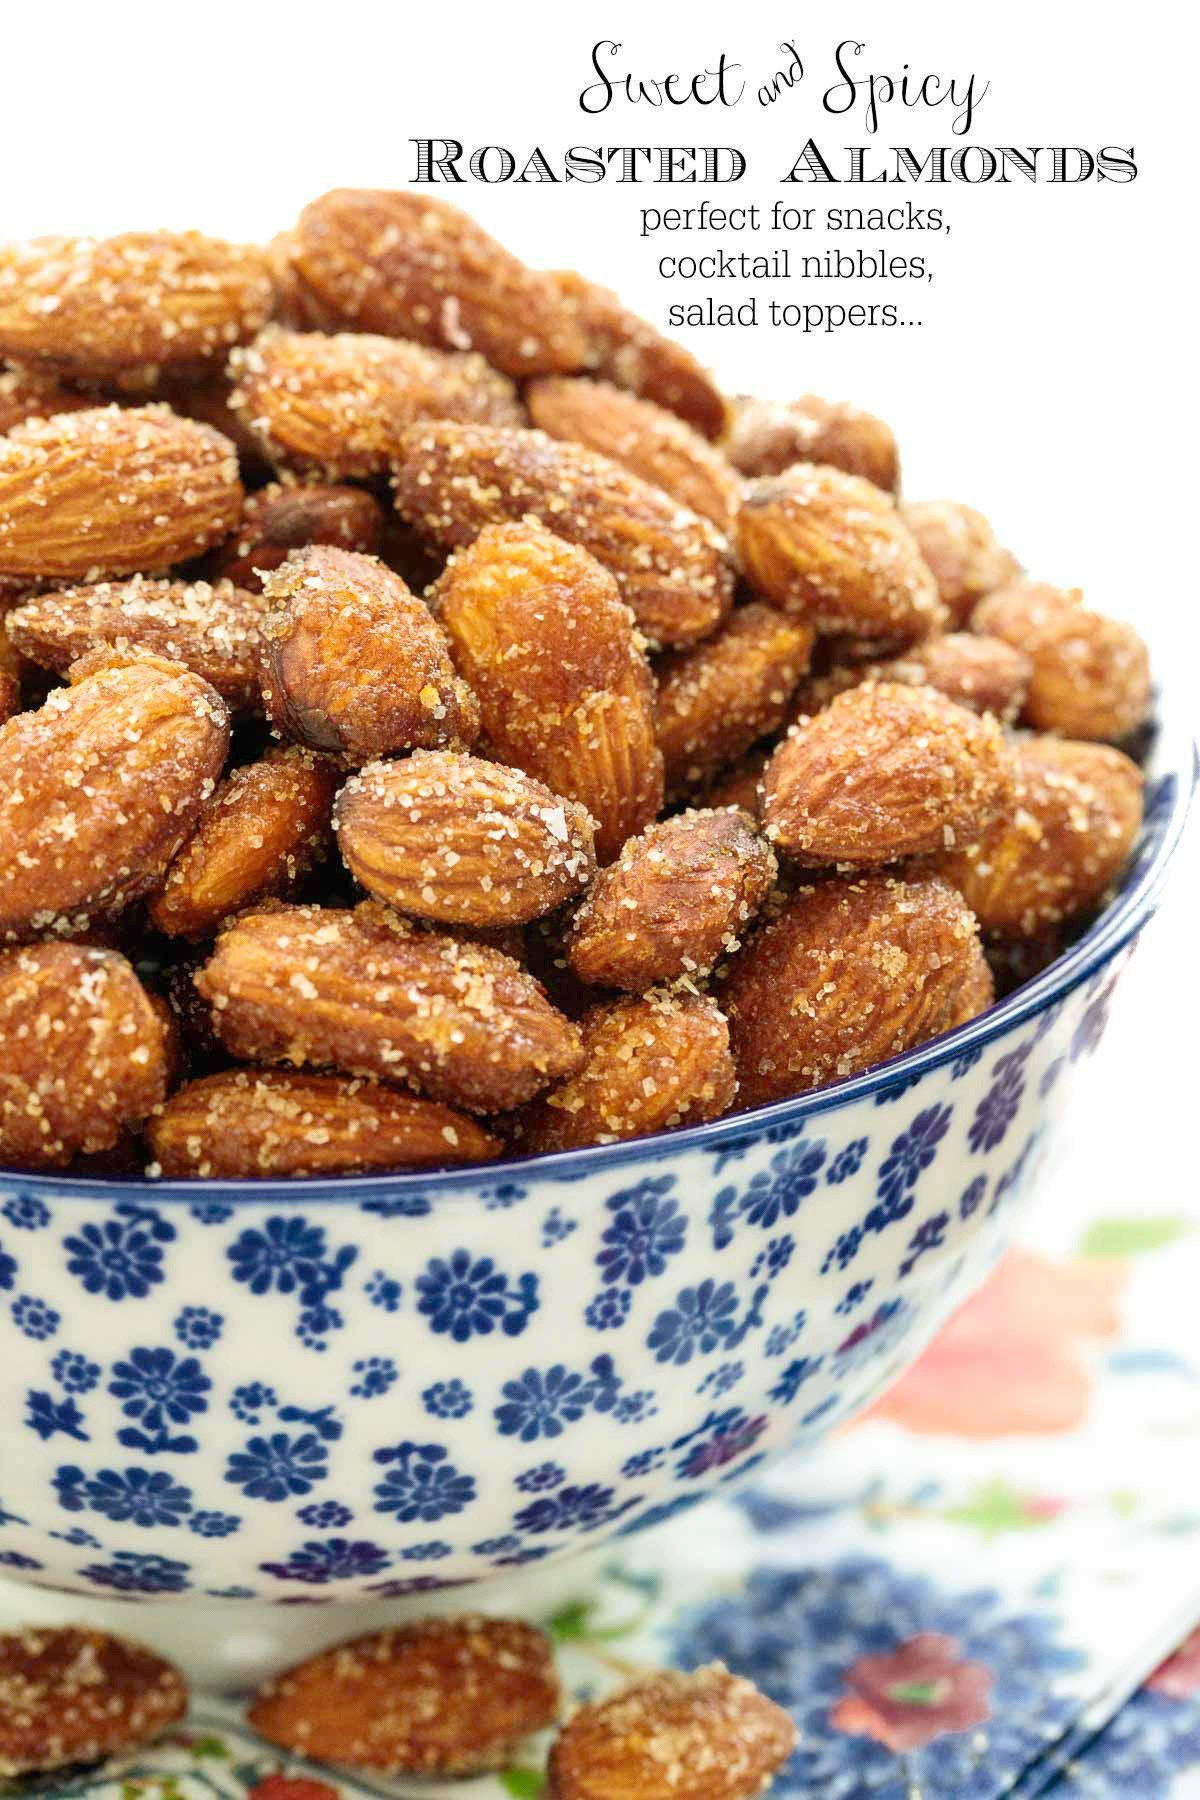 Sweet and Spicy Roasted Almonds images